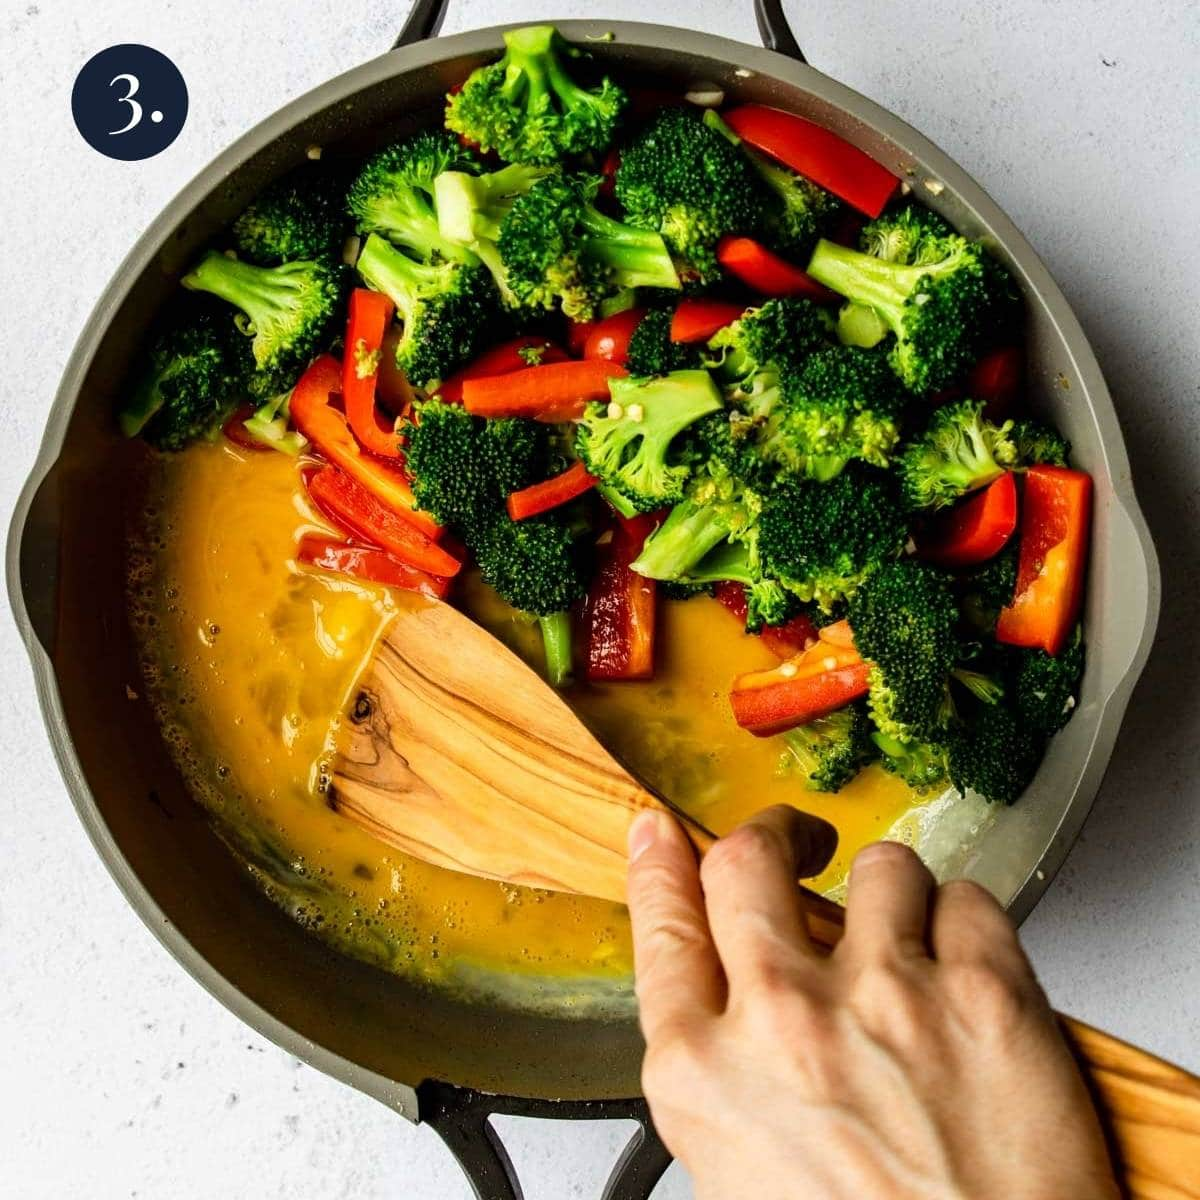 broccoli and red pepper to one side and cooking egg in the other side of the pan